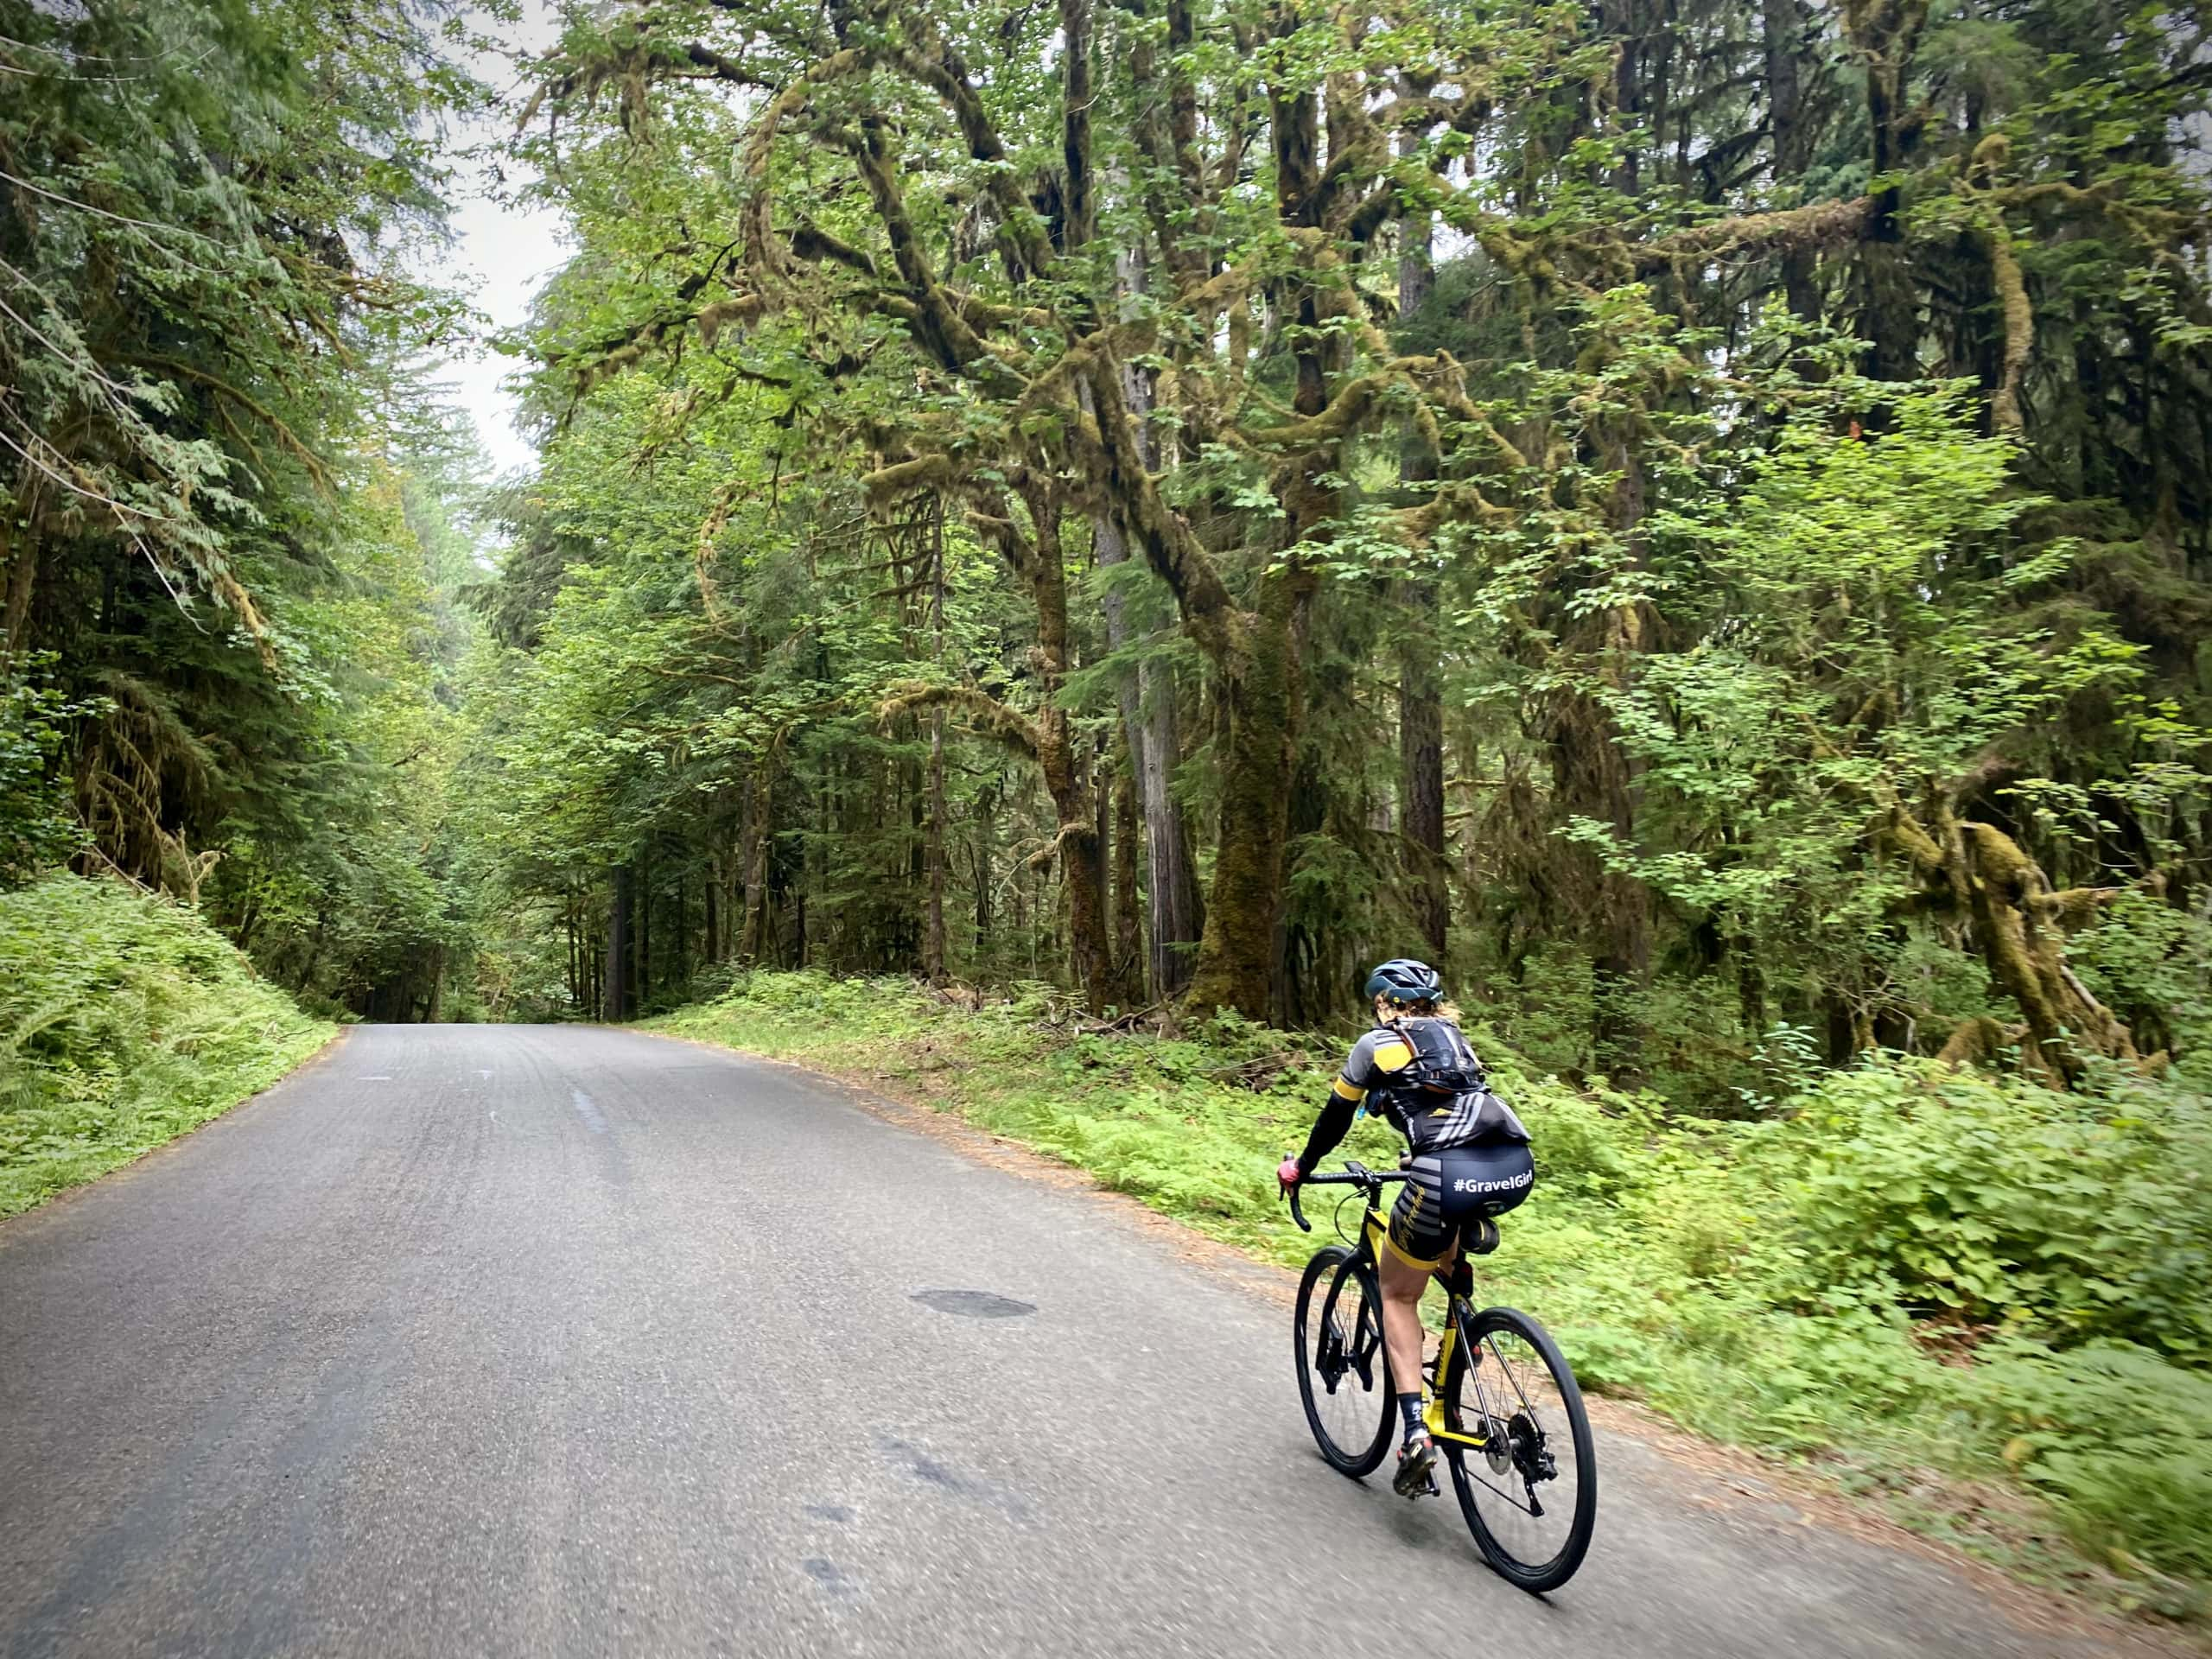 Gravel Girl on NF-22 with trees covered in moss.